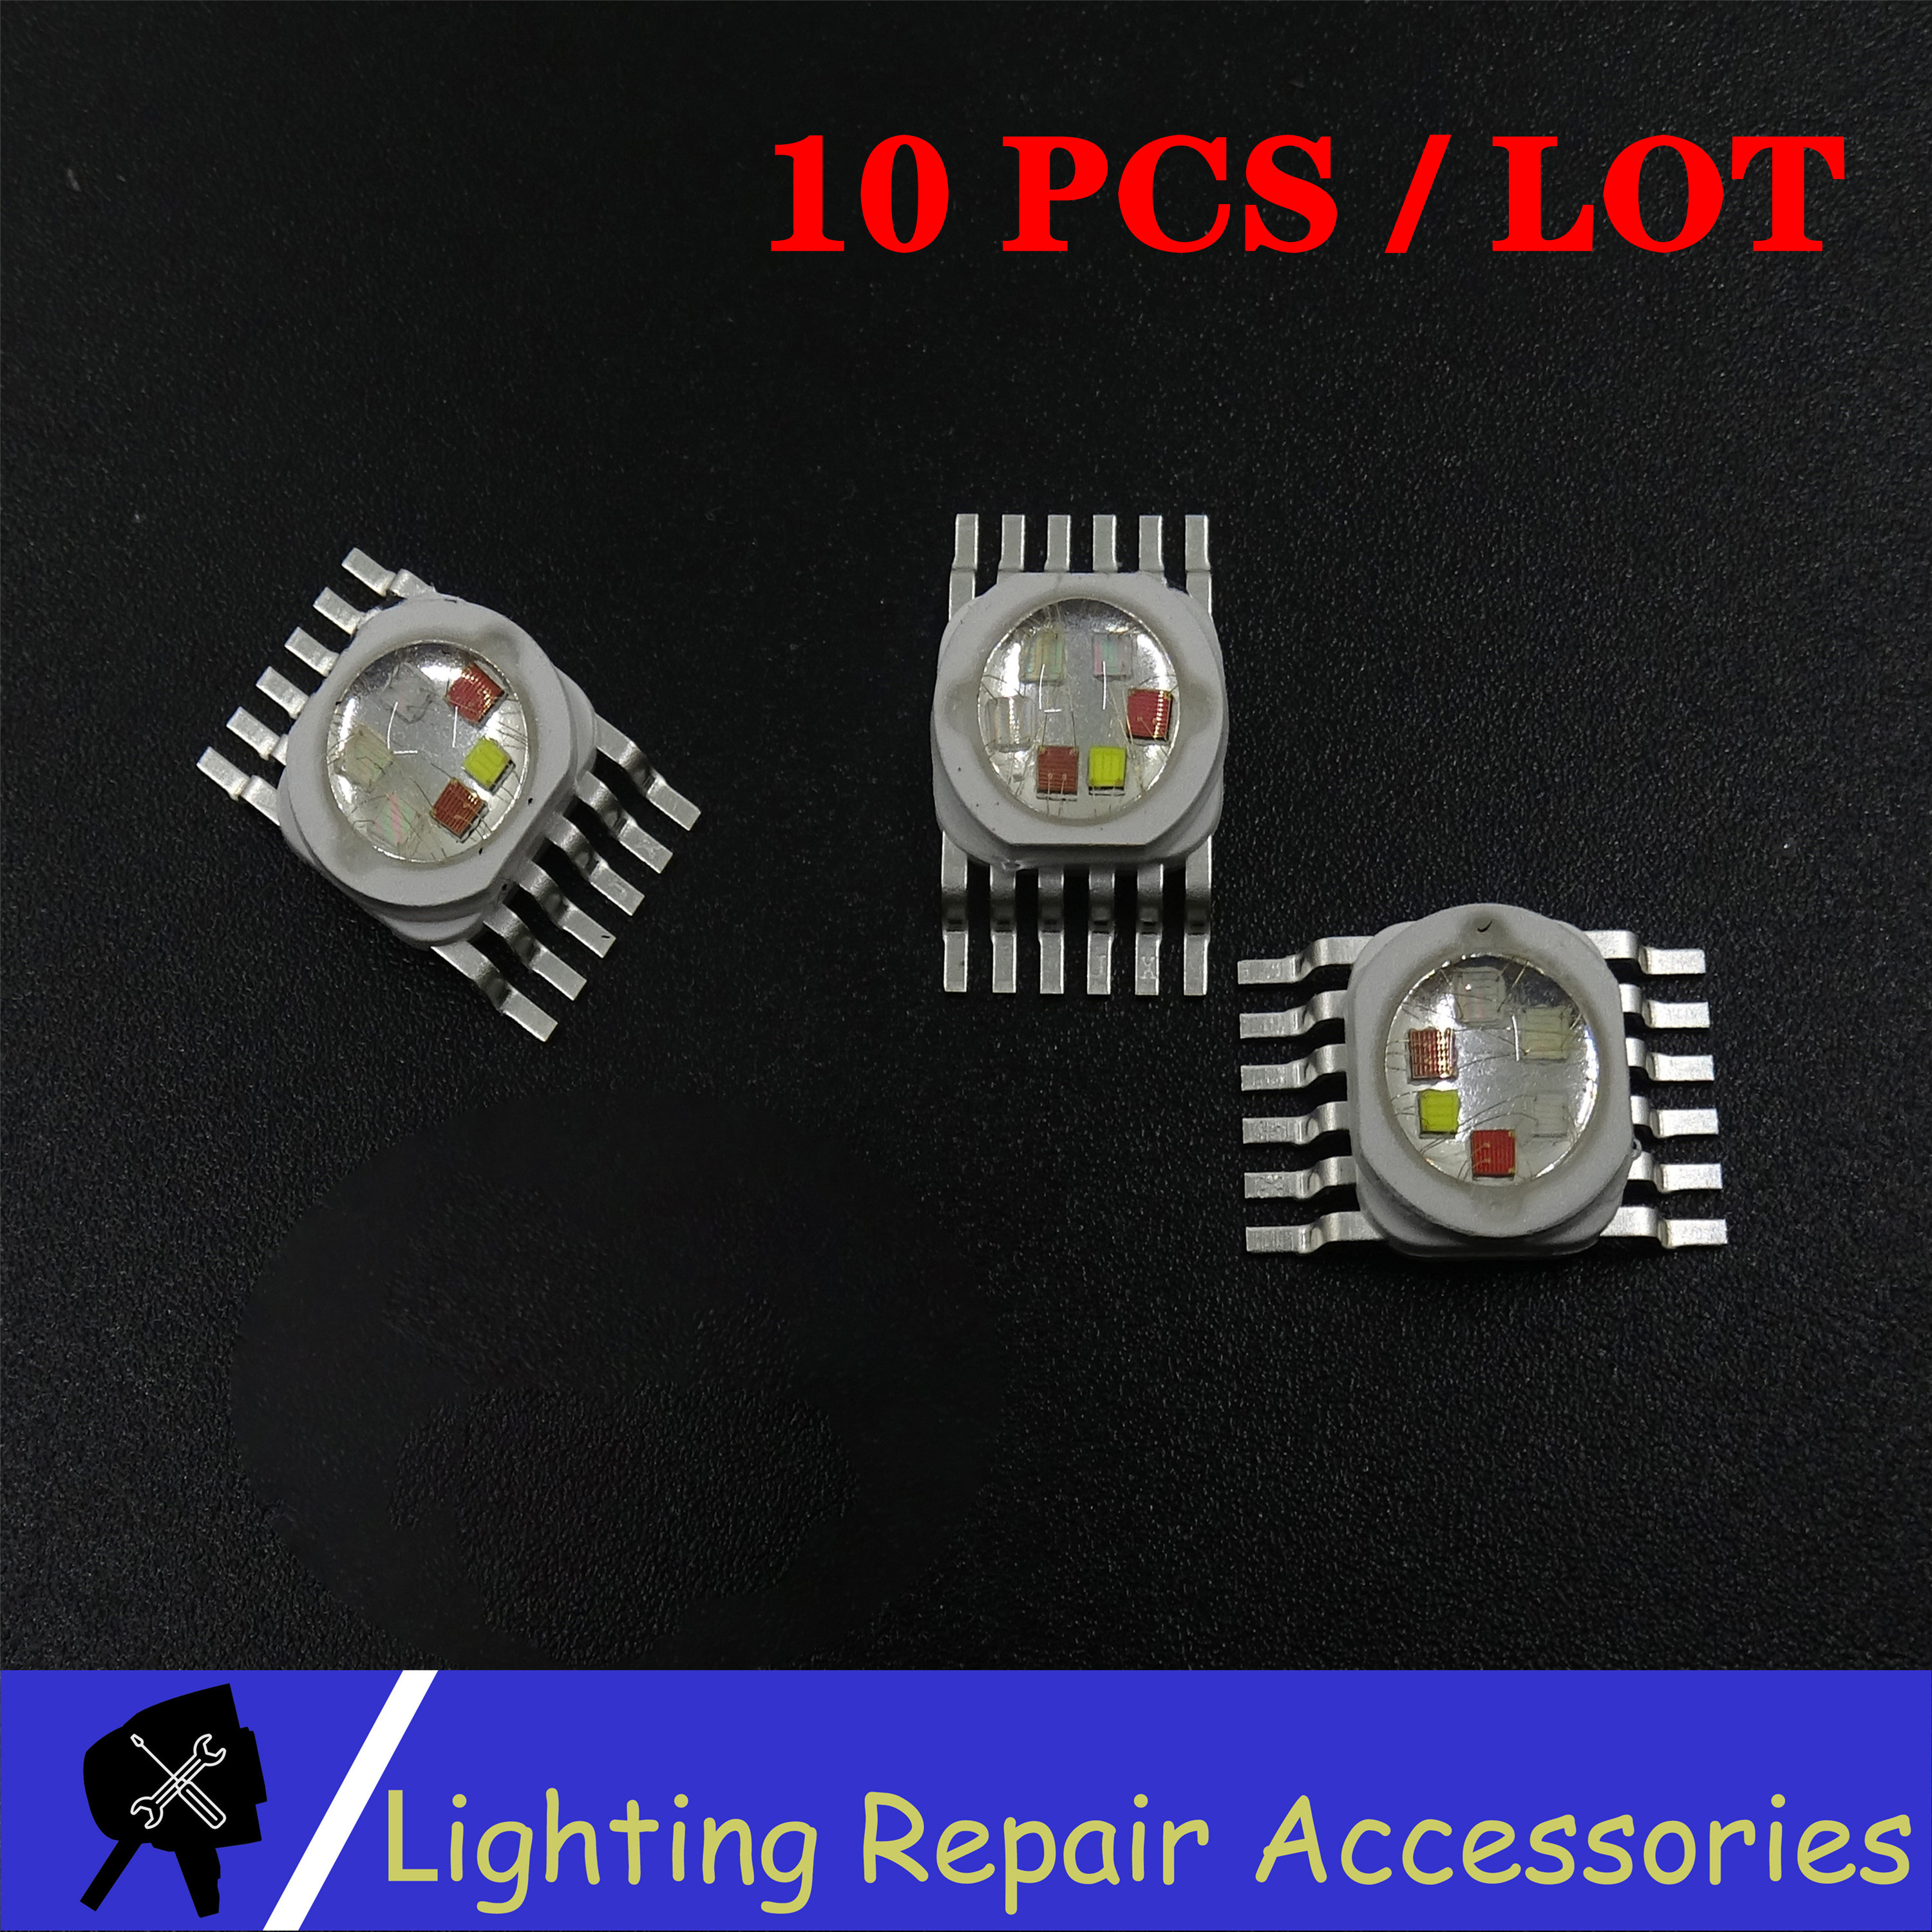 10 Pcs/pack 6W 12w 18w RGBWA UV 6 In 1 LED Bead Lamp Source Led Chip LED Lamp Bead Led Light For  Led Stage Lighting